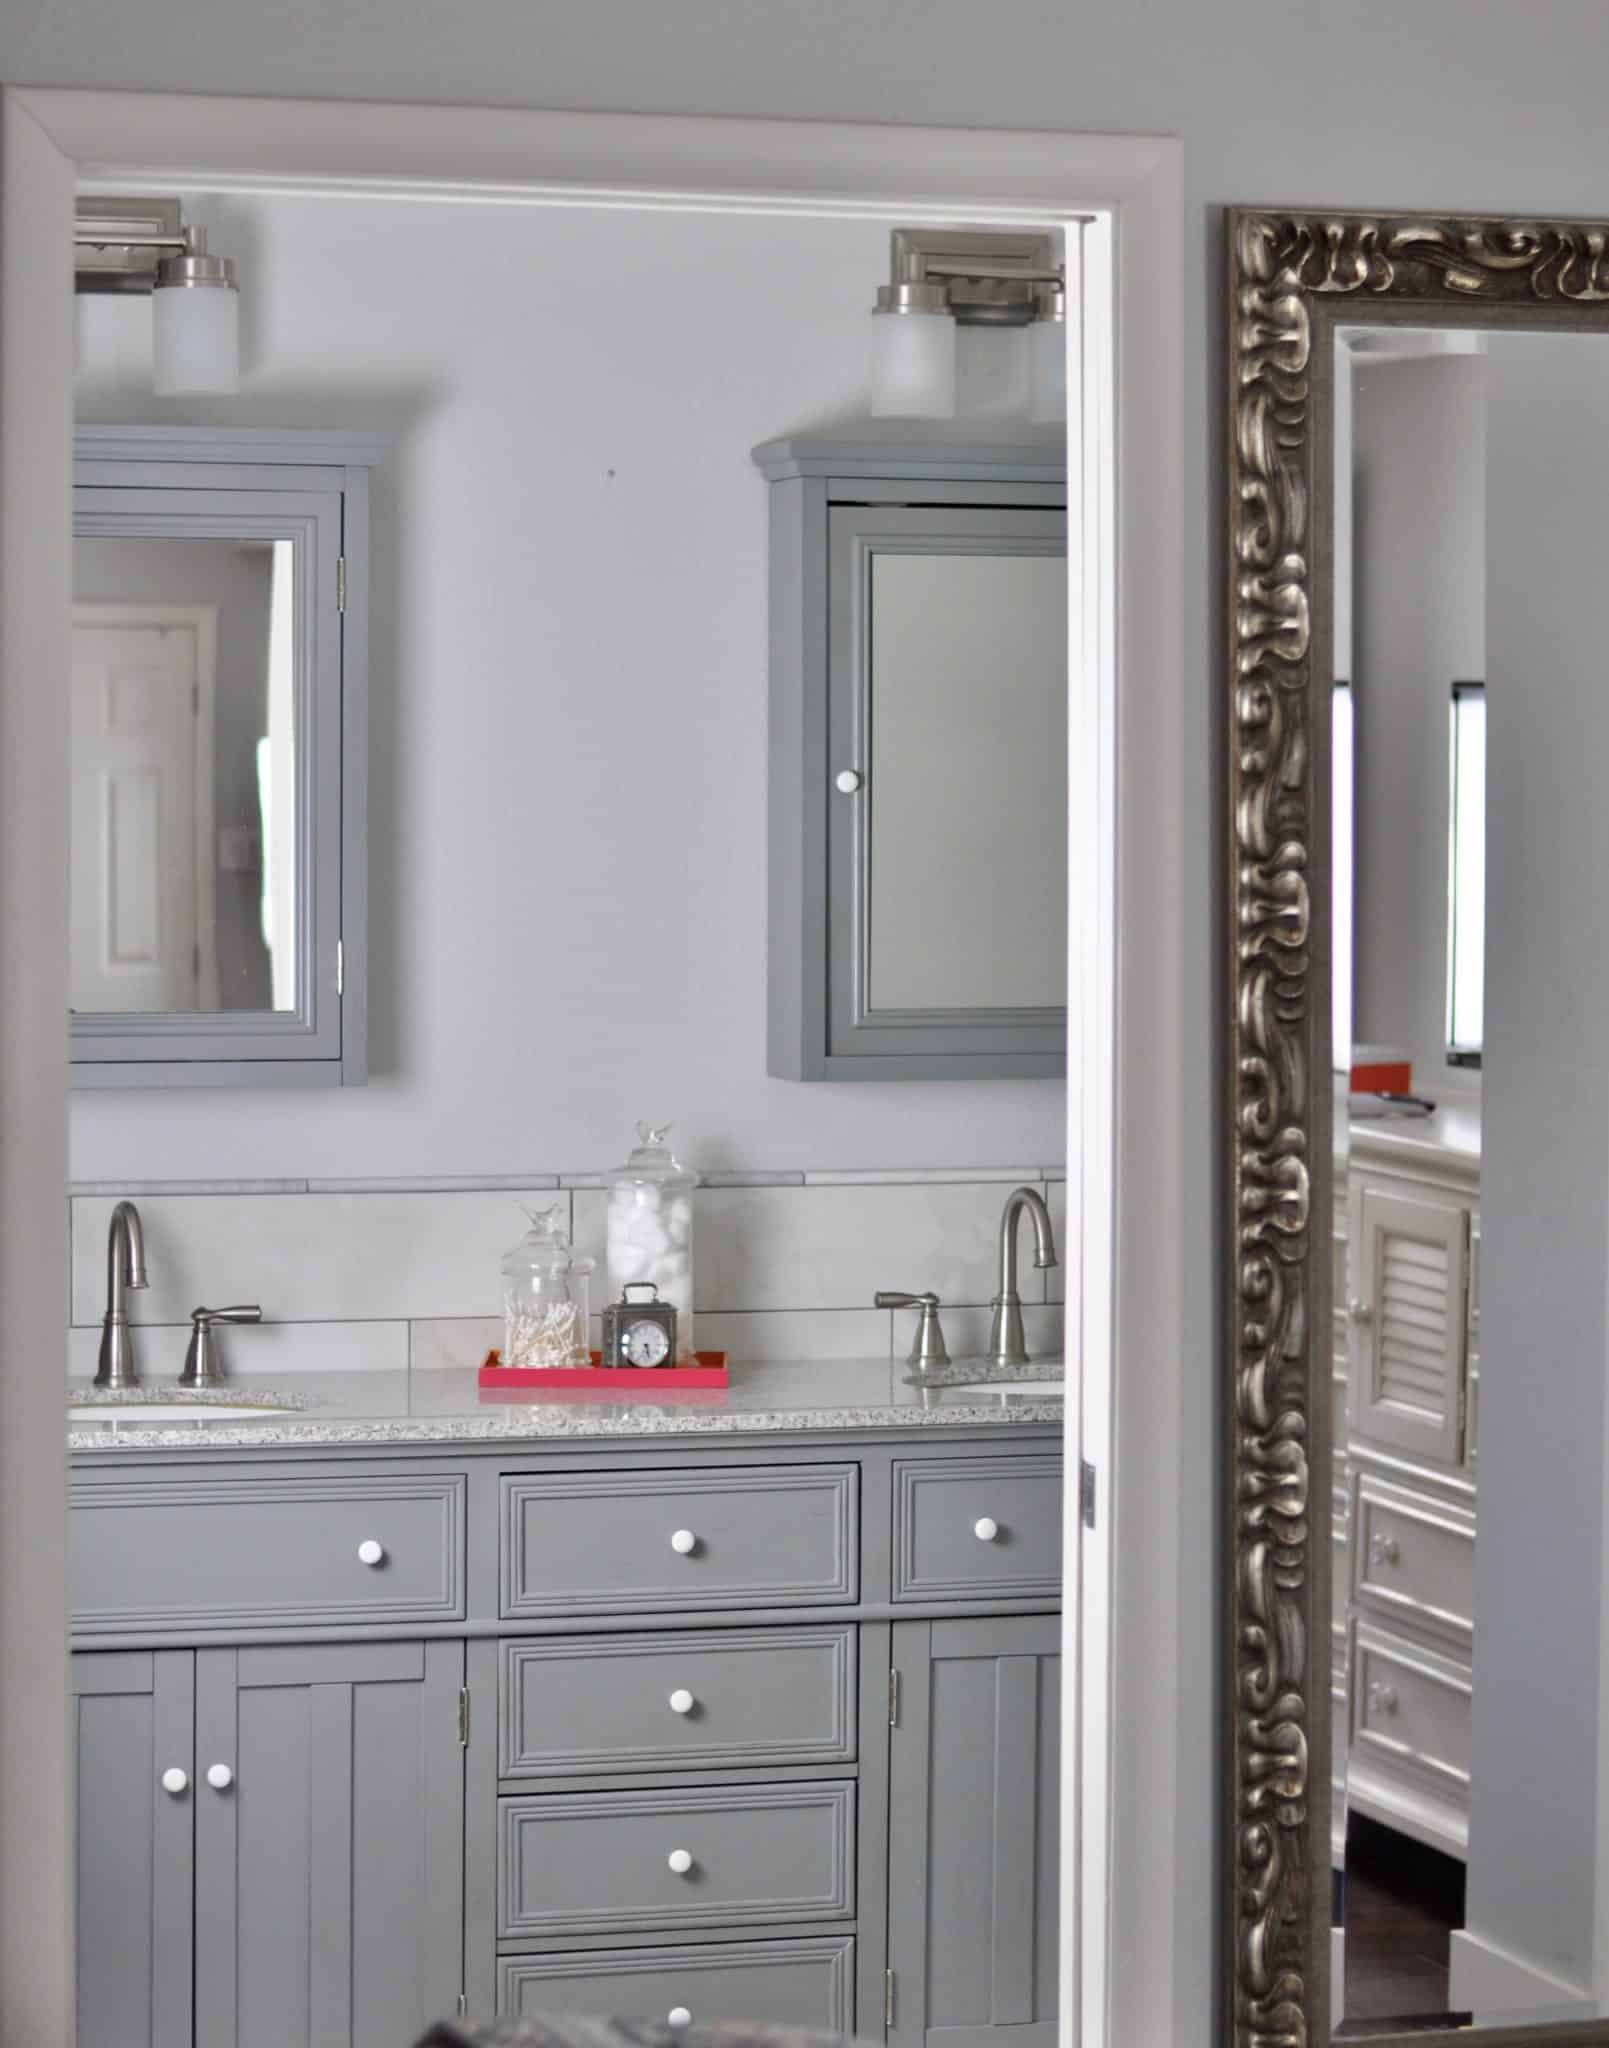 Bathroom Double Sink Vanity Monochromatic Gray and White bathroom